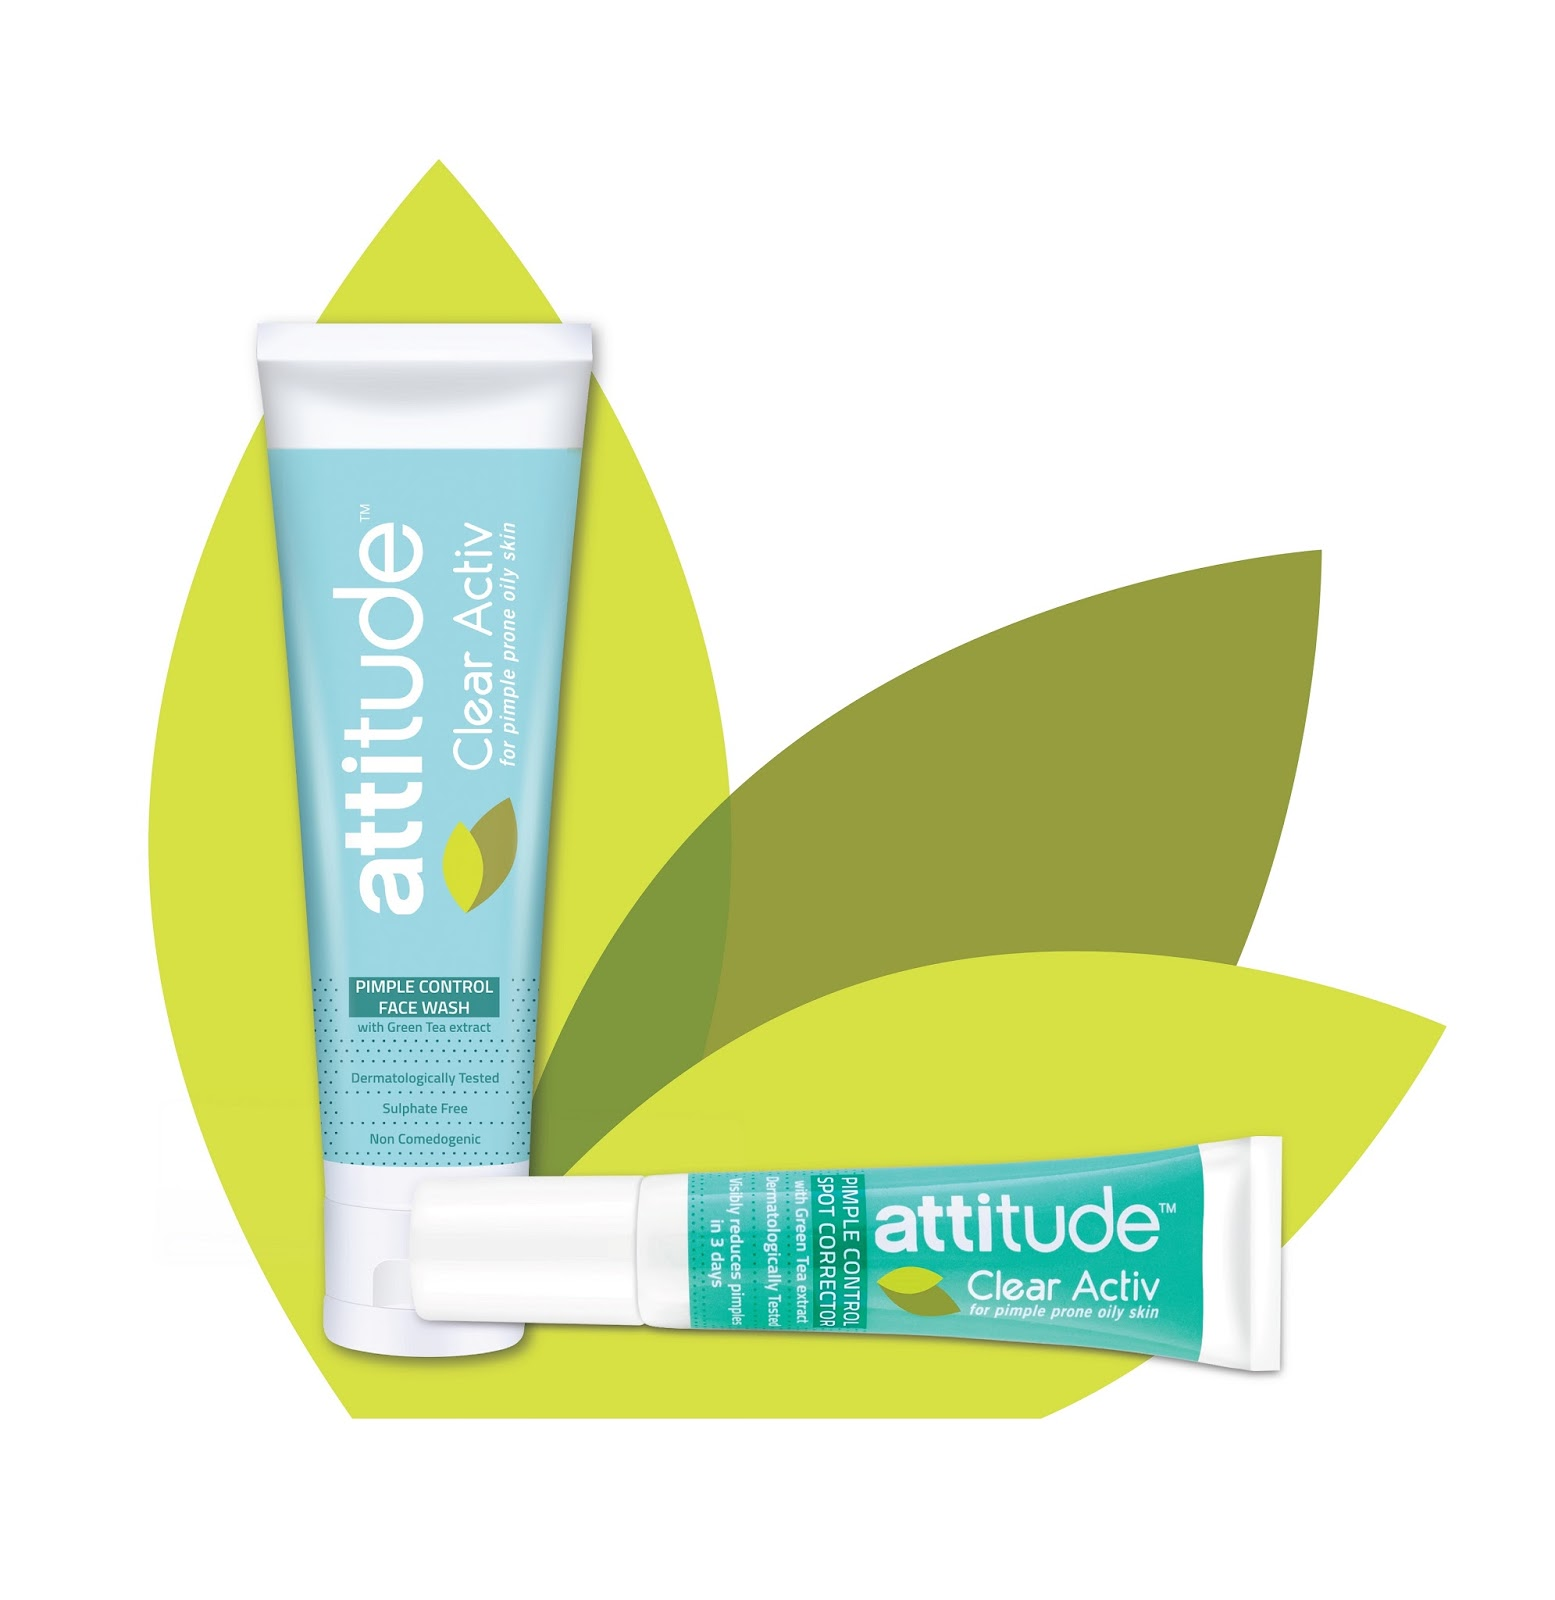 58fb33ba7 Amway India Introduces 'Attitude' Clear Activ Pimple Control Range in India